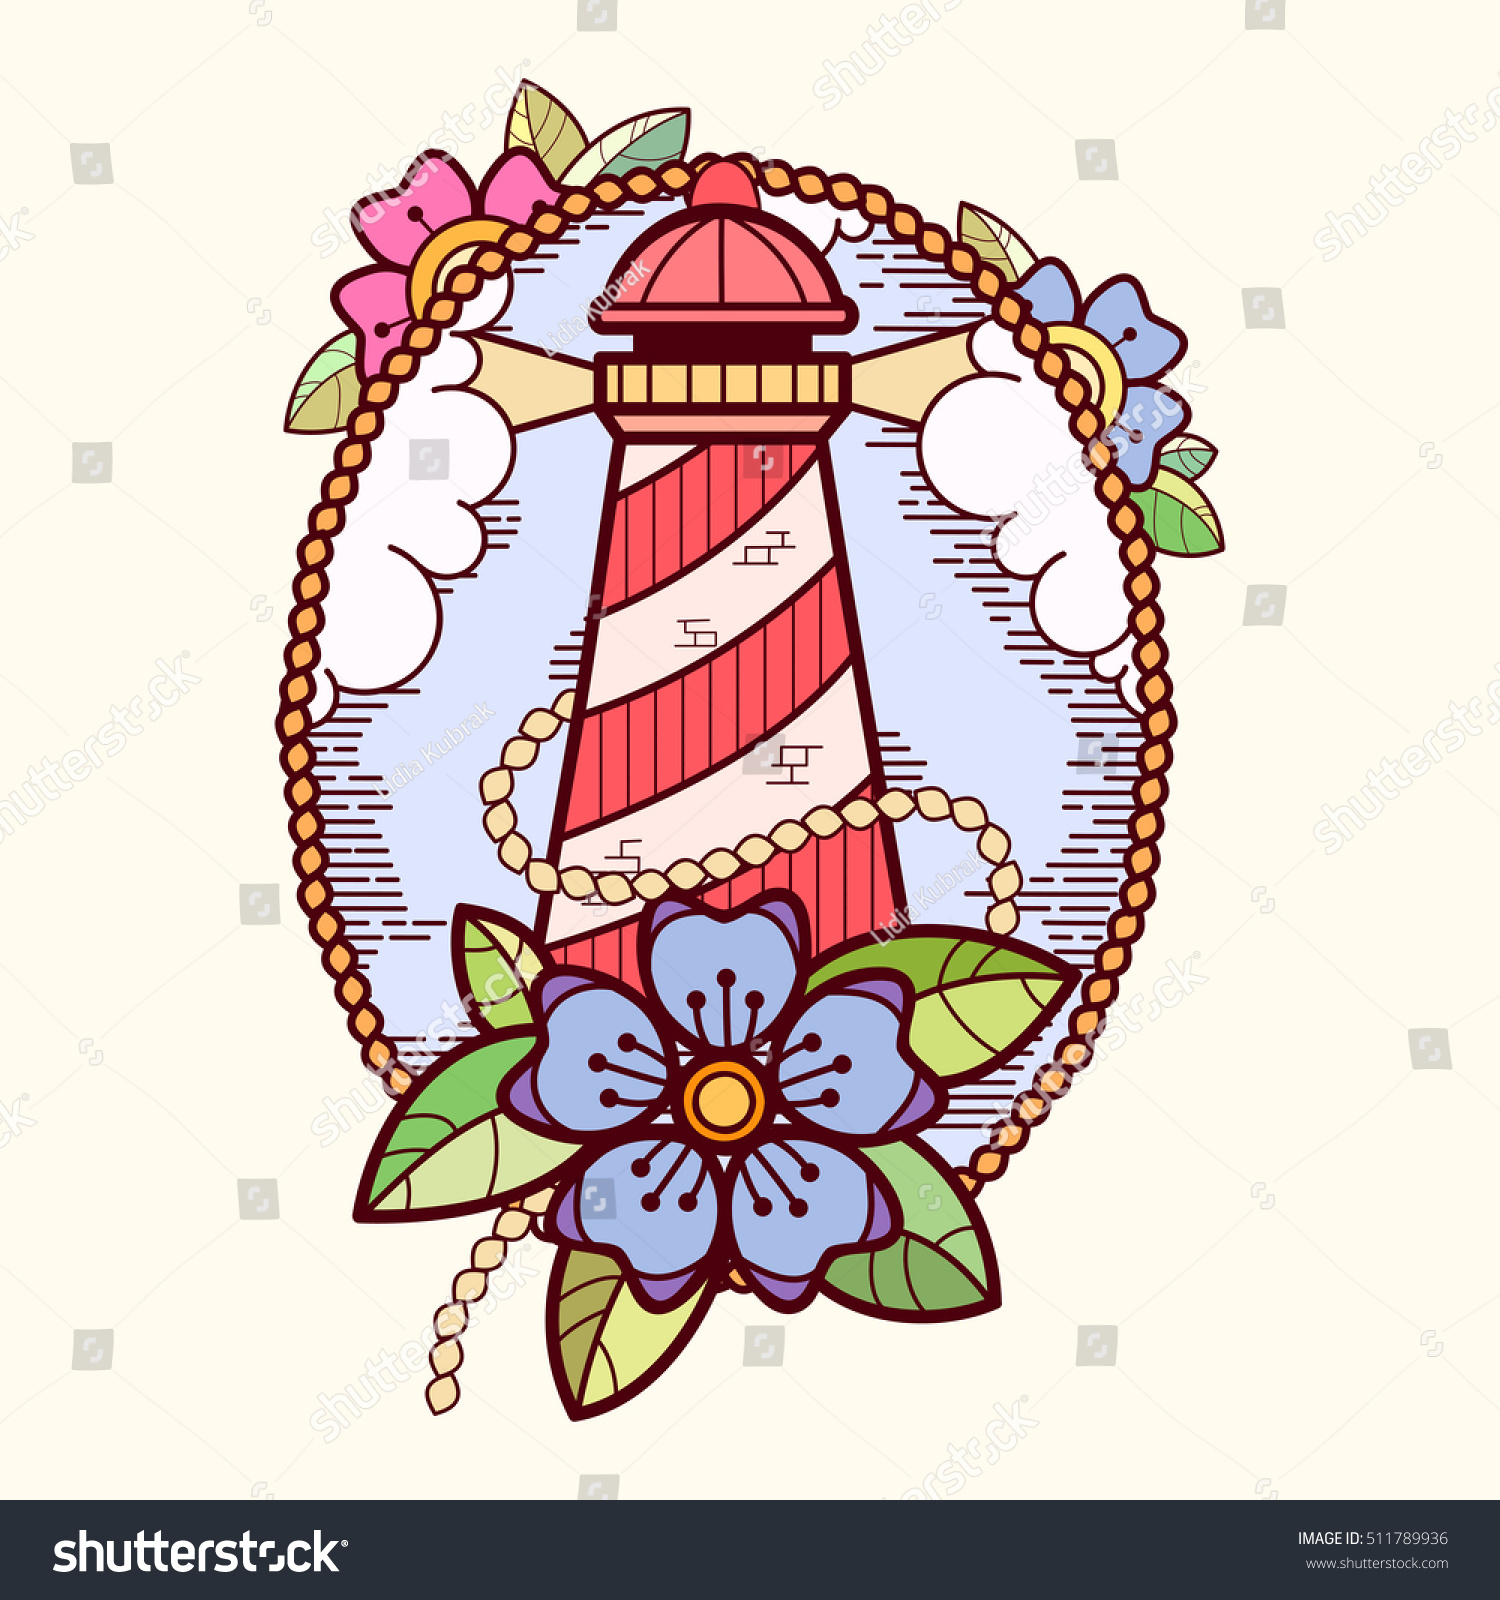 sea lifebuoy flowers clouds old stock vector 511789936